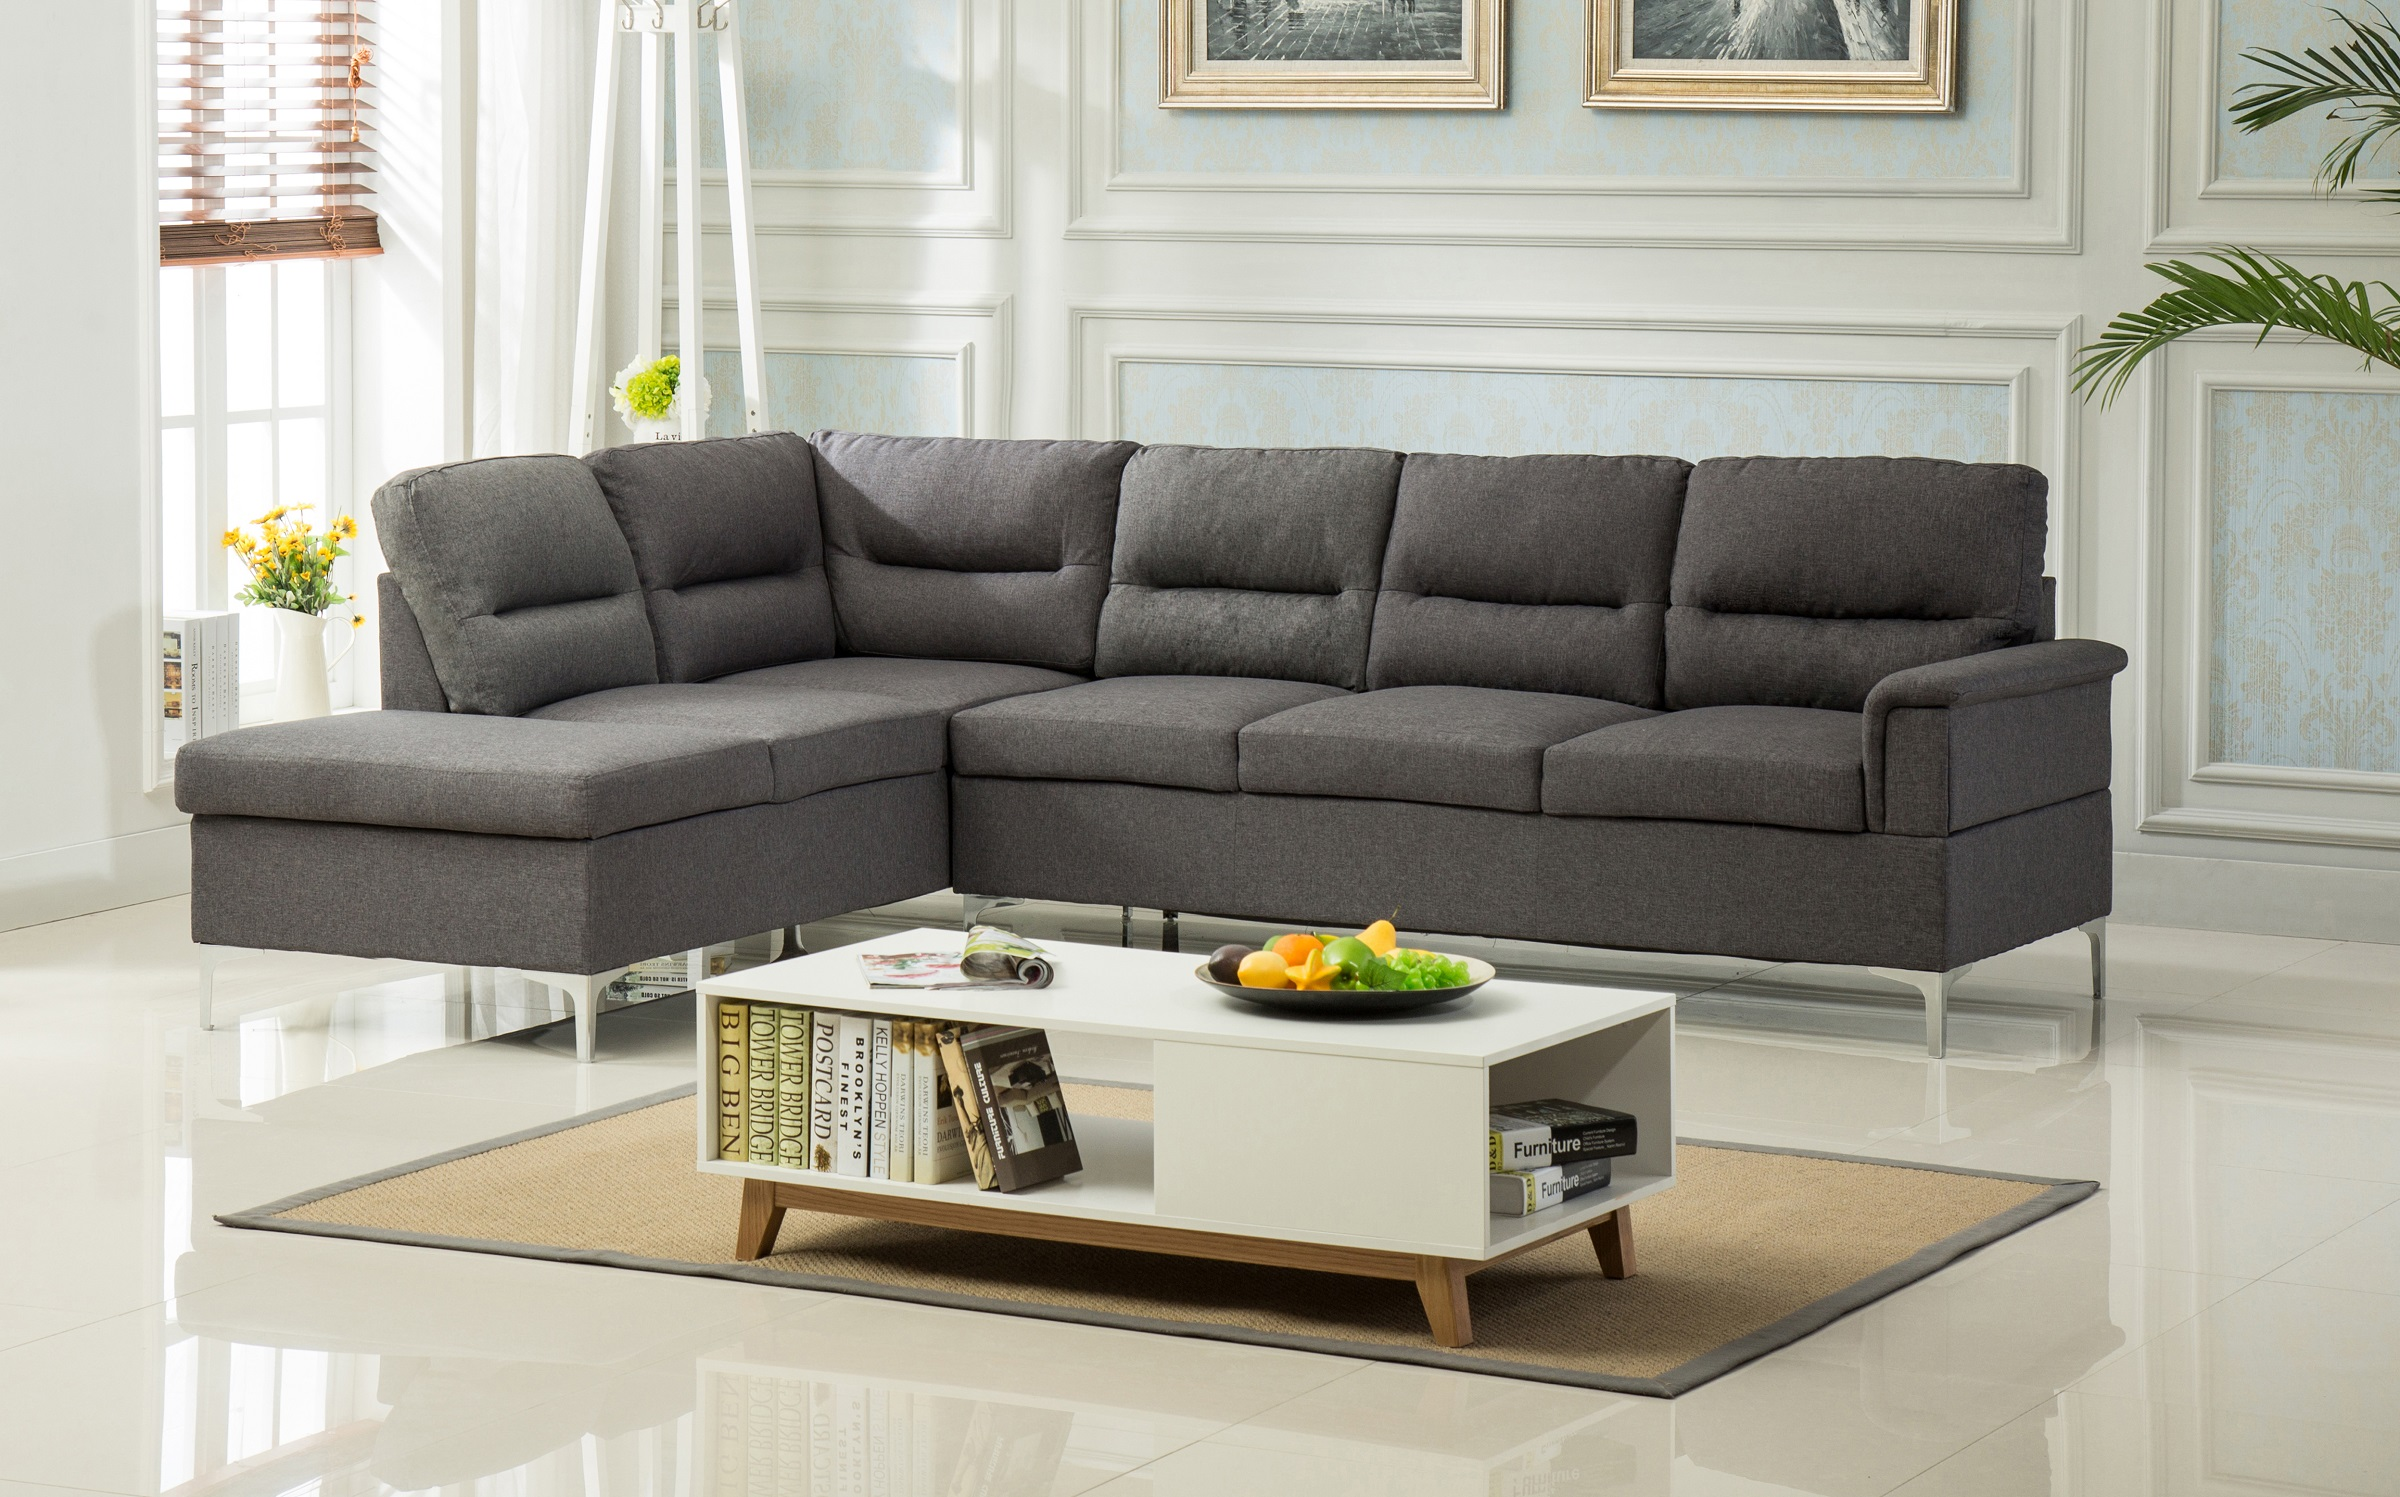 Modern Classic Living Room Furniture 2pc Sectional Sofa Set Grey Linen  Fabric Sofa Chaise Plush Cushion Couch